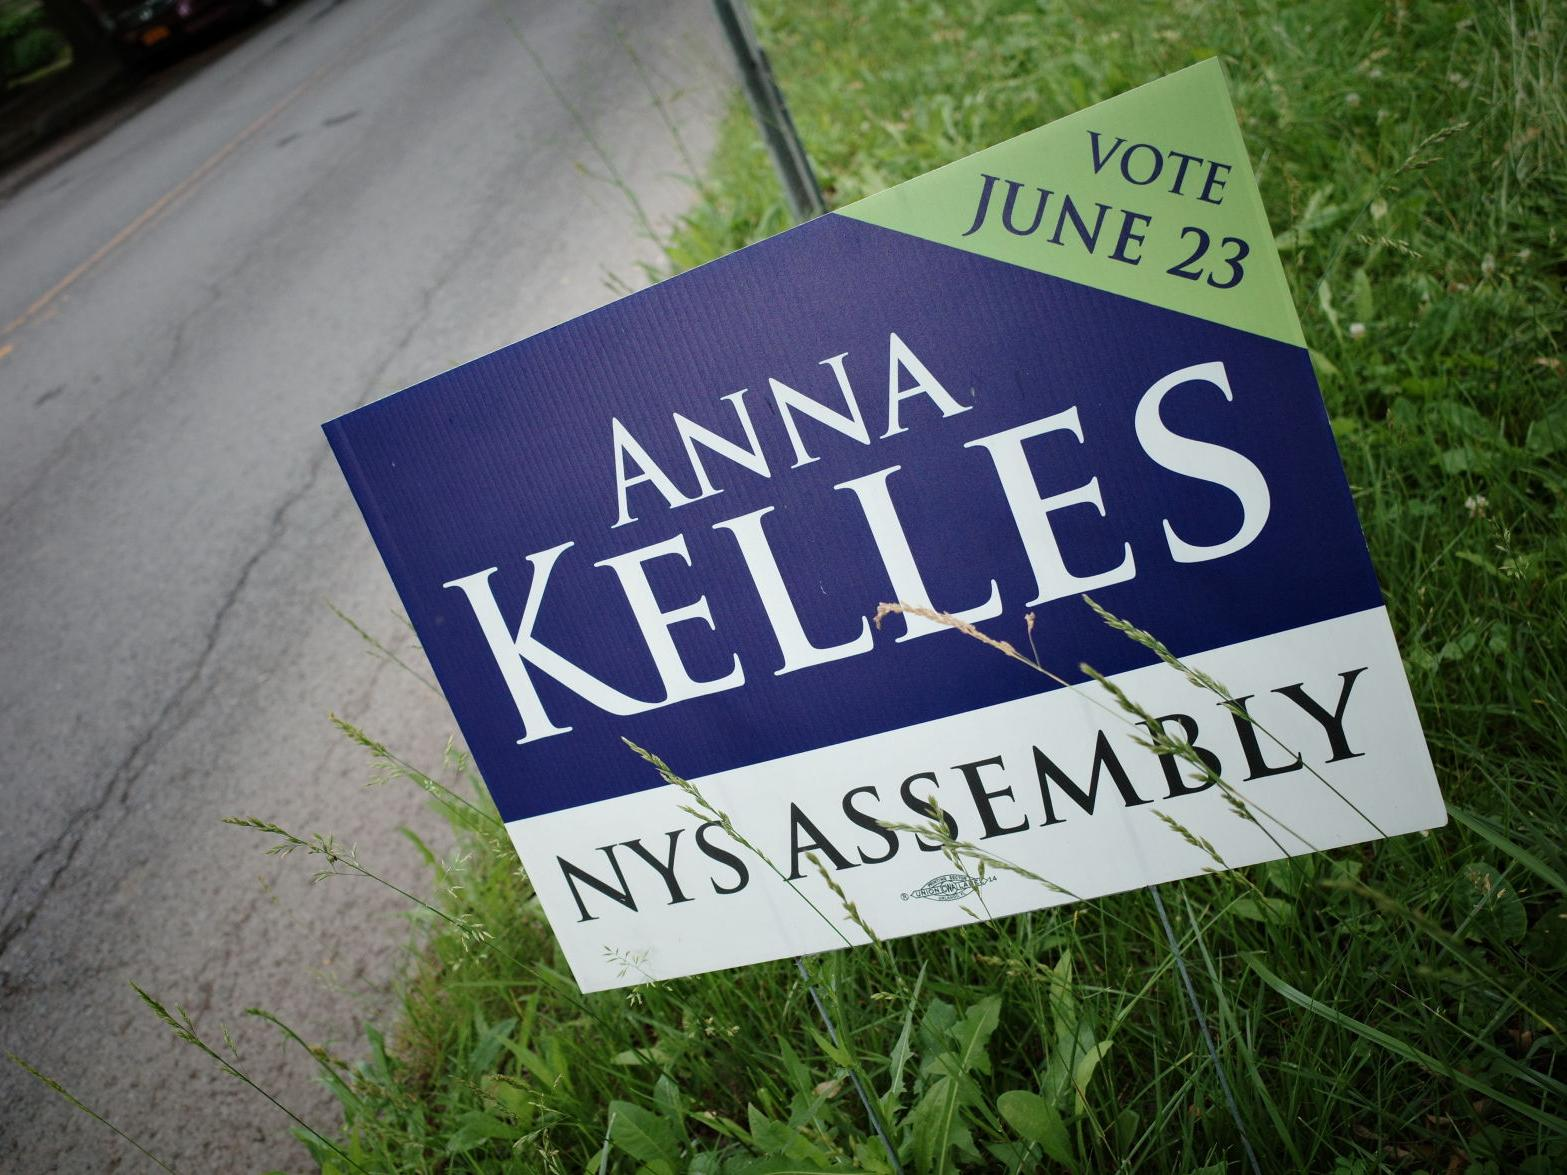 Special election to replace Anna Kelles is 'awkward timing'